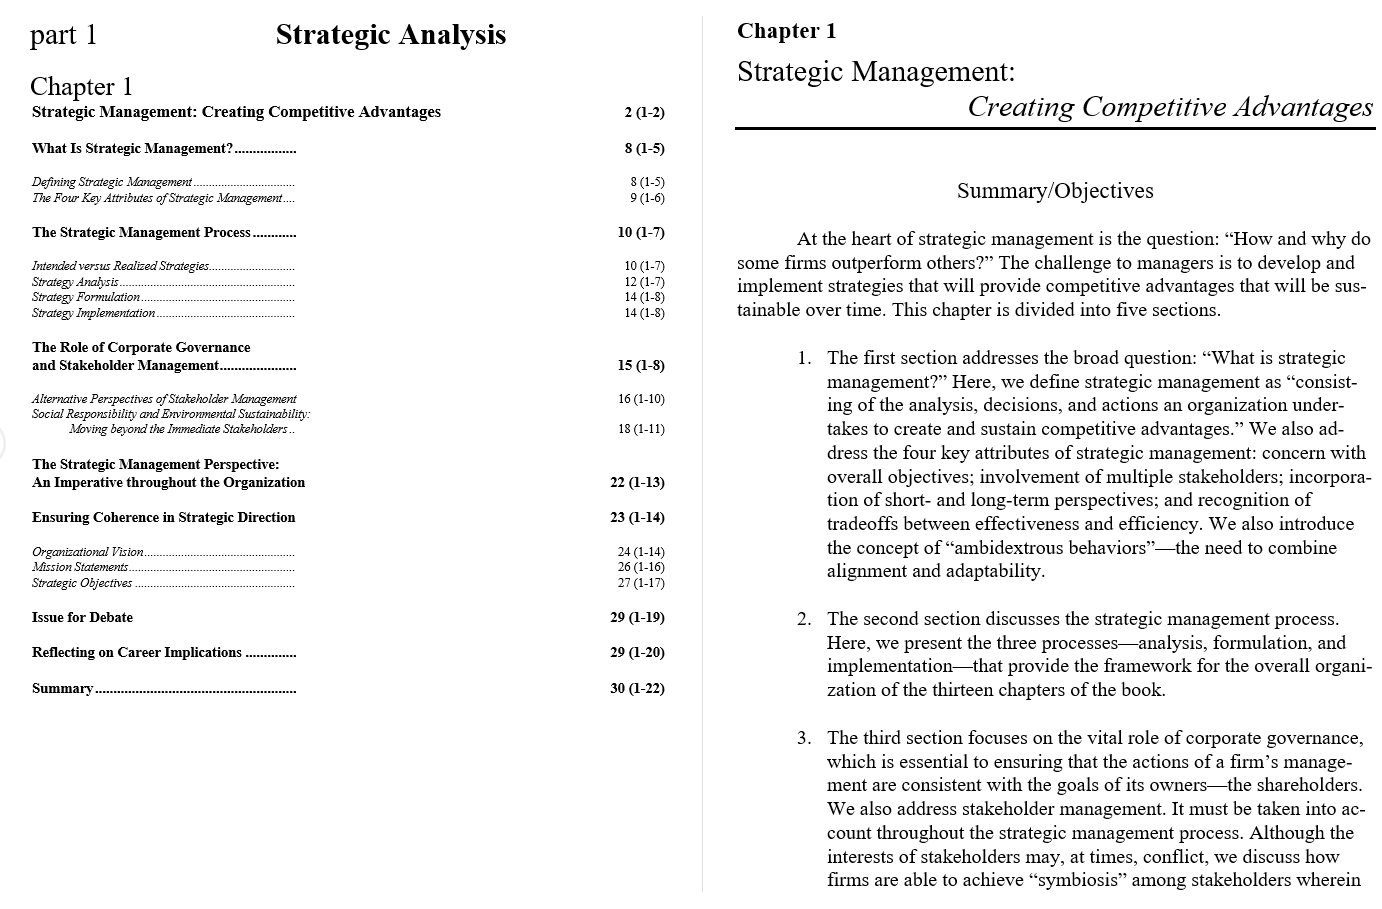 solution manual for Strategic Management: Creating Competitive Advantages 8th Edition的图片 3